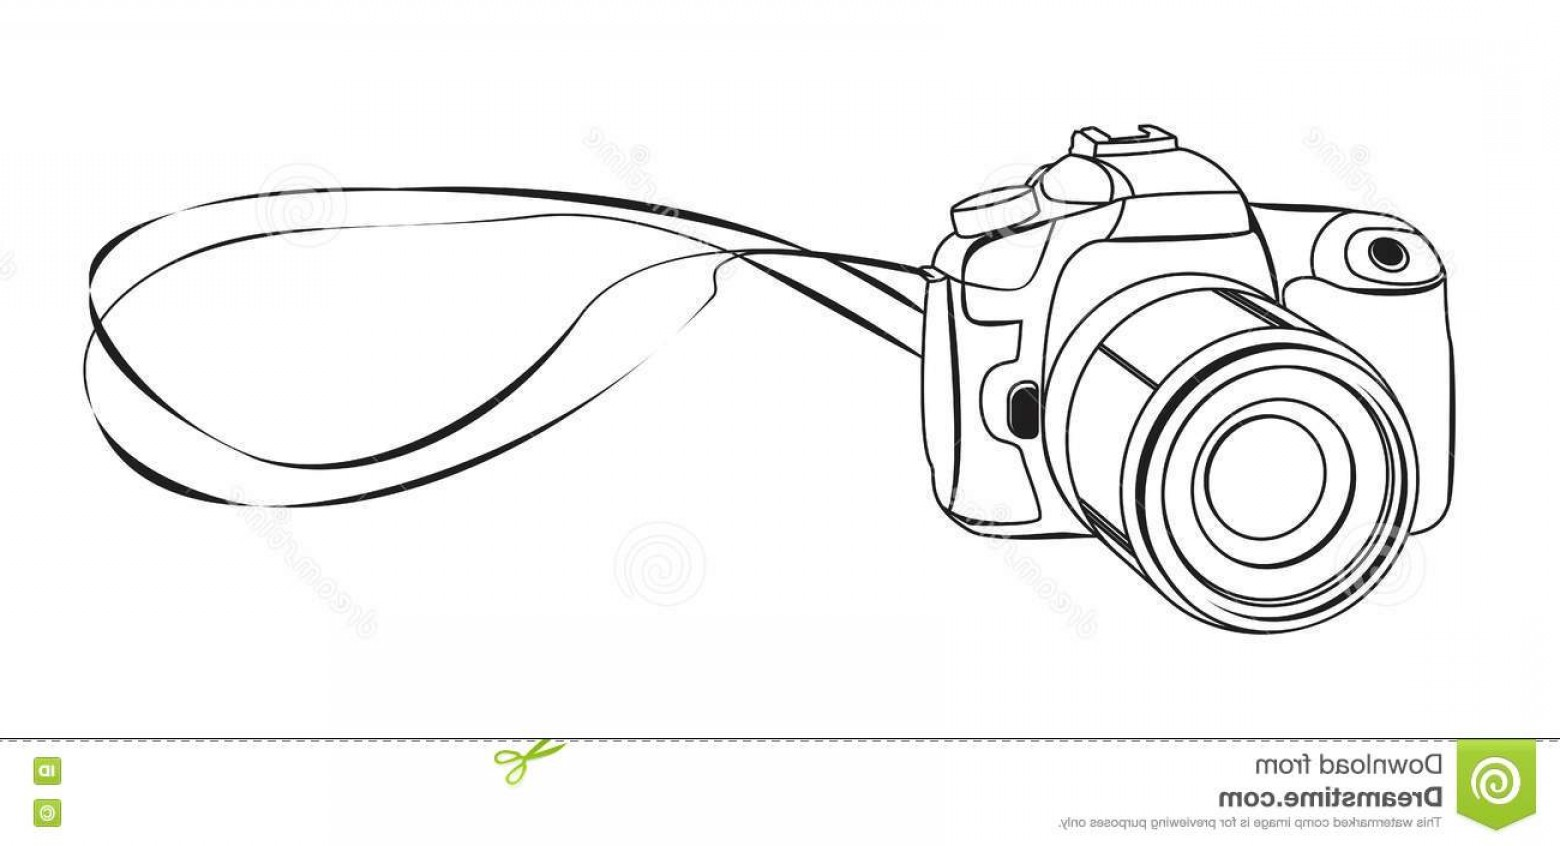 1560x846 Stock Illustration Sketch Dslr Camera Vector Illustration Image